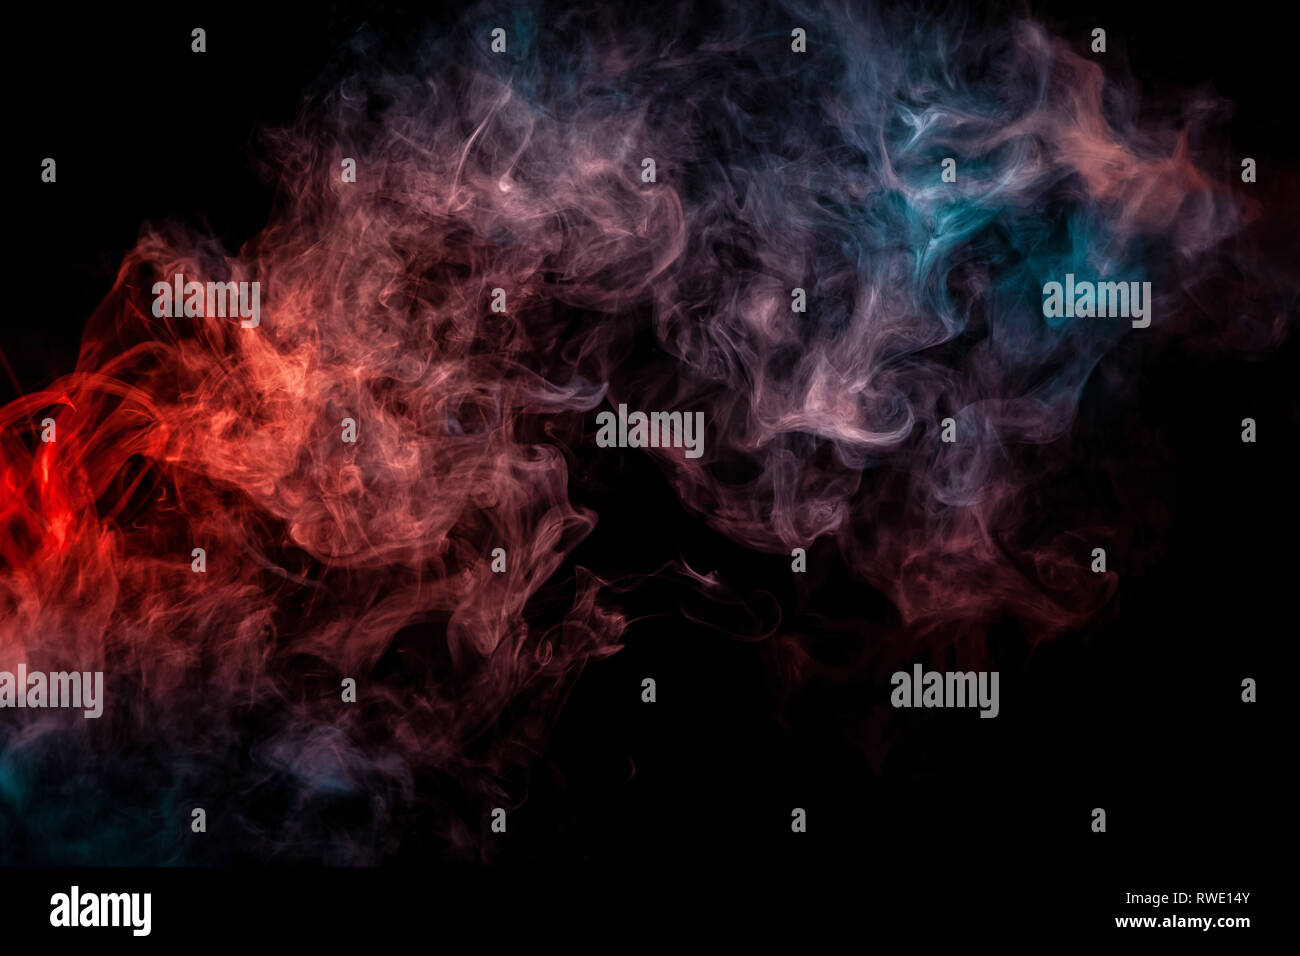 Abstract Art Red And Blue Colored Smoke On Black Isolated